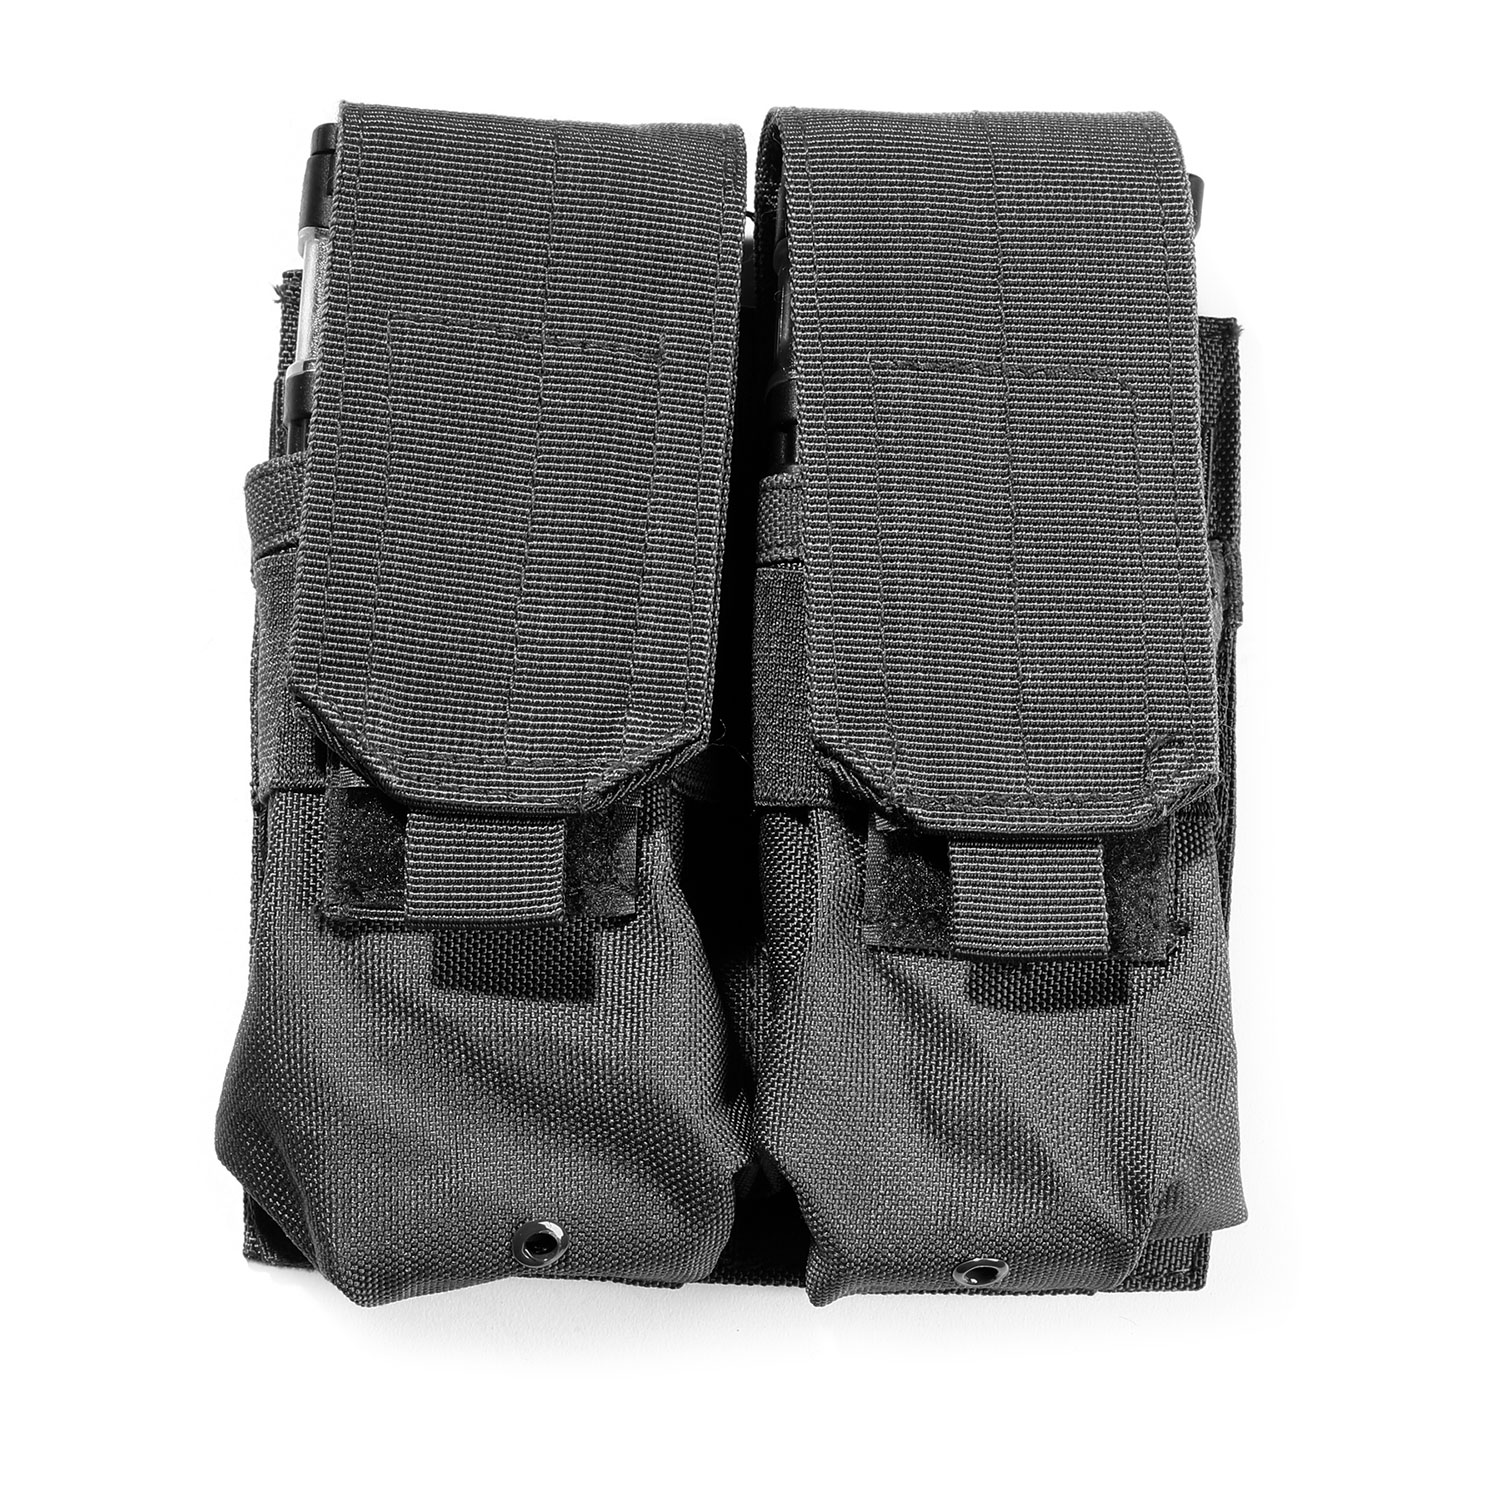 5ive Star Gear ARDP-5S M4/M16 Double Mag Pouch